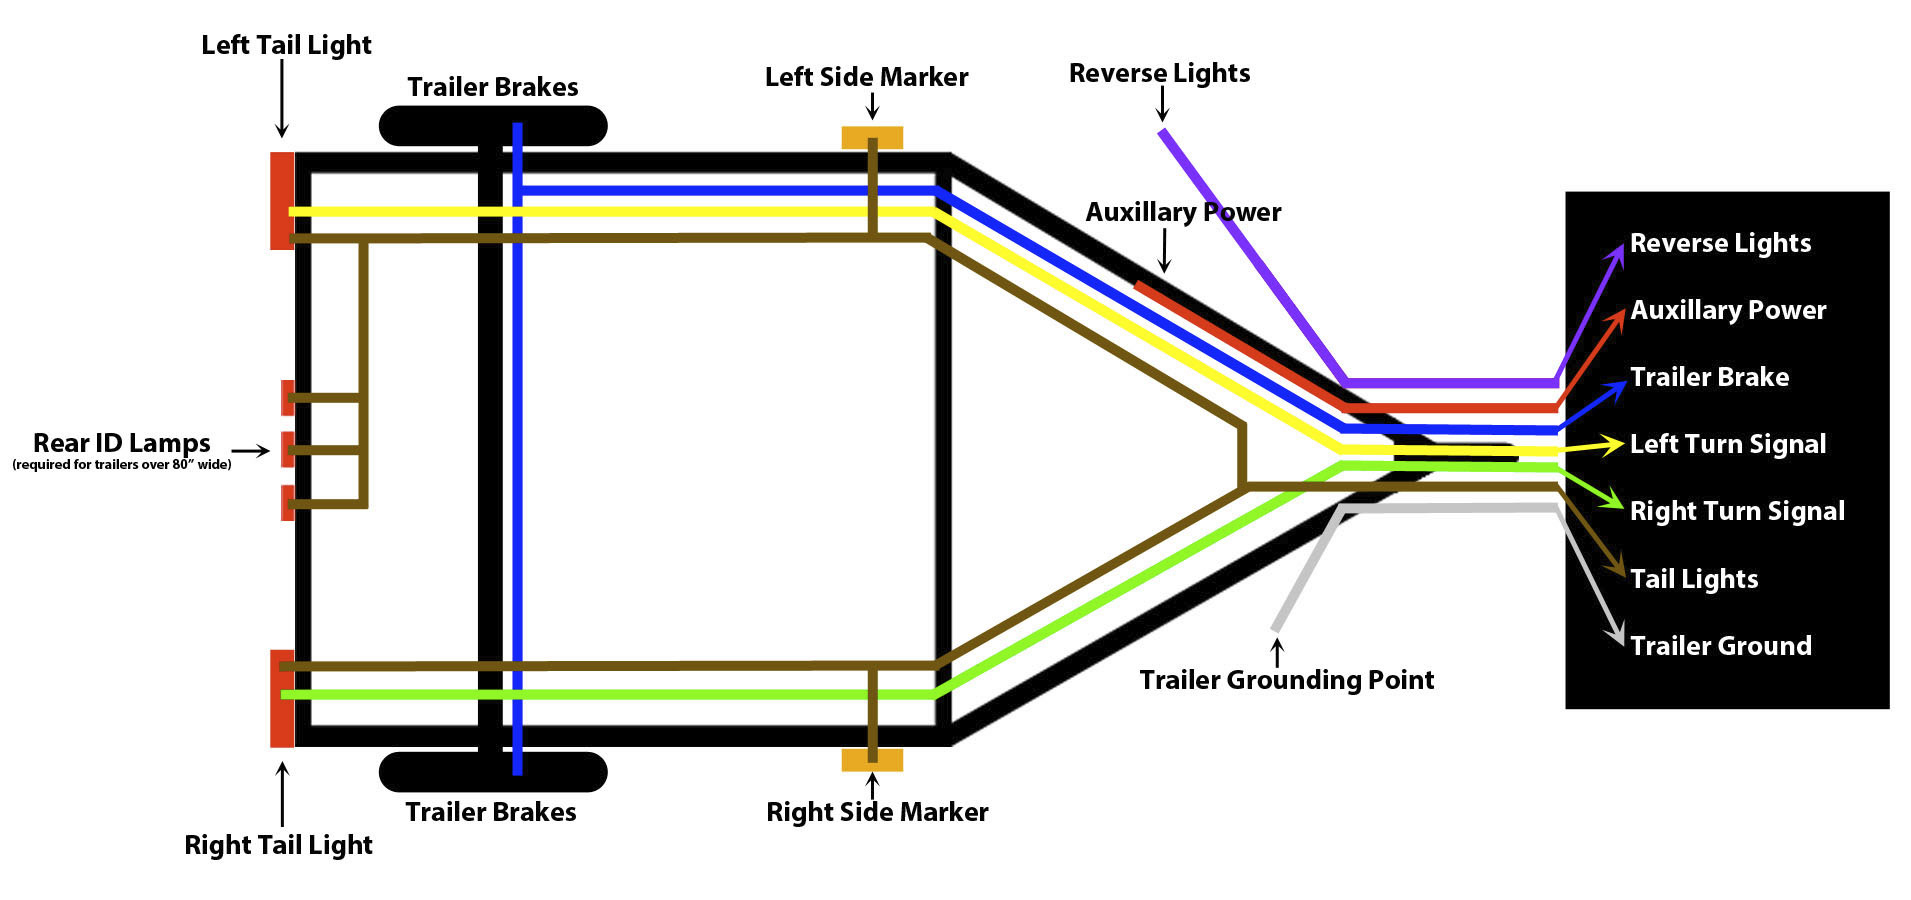 How To Wire Trailer Lights - Trailer Wiring Guide & Videos - Five Pin Trailer Wiring Diagram